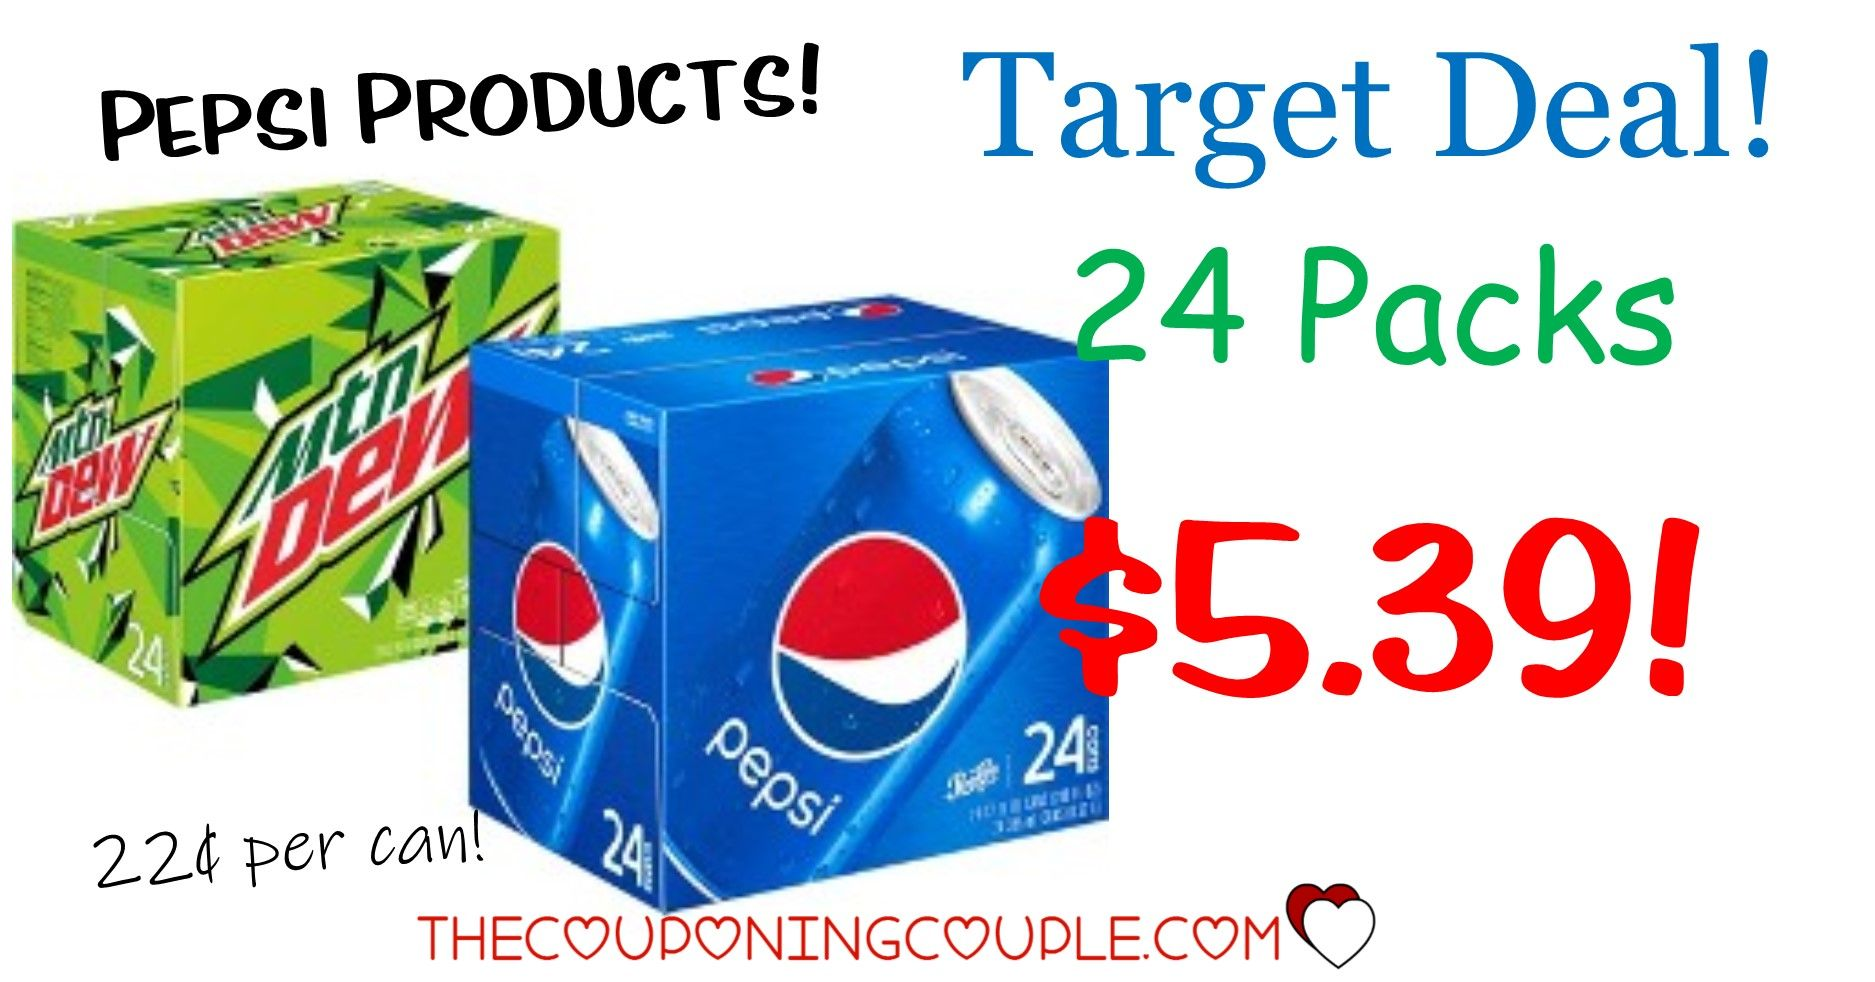 Stock Up Pepsi Products Soda Pop 24 Packs For Only 0 22 Per Can With Target Deal Soda Pop Soda Pepsi